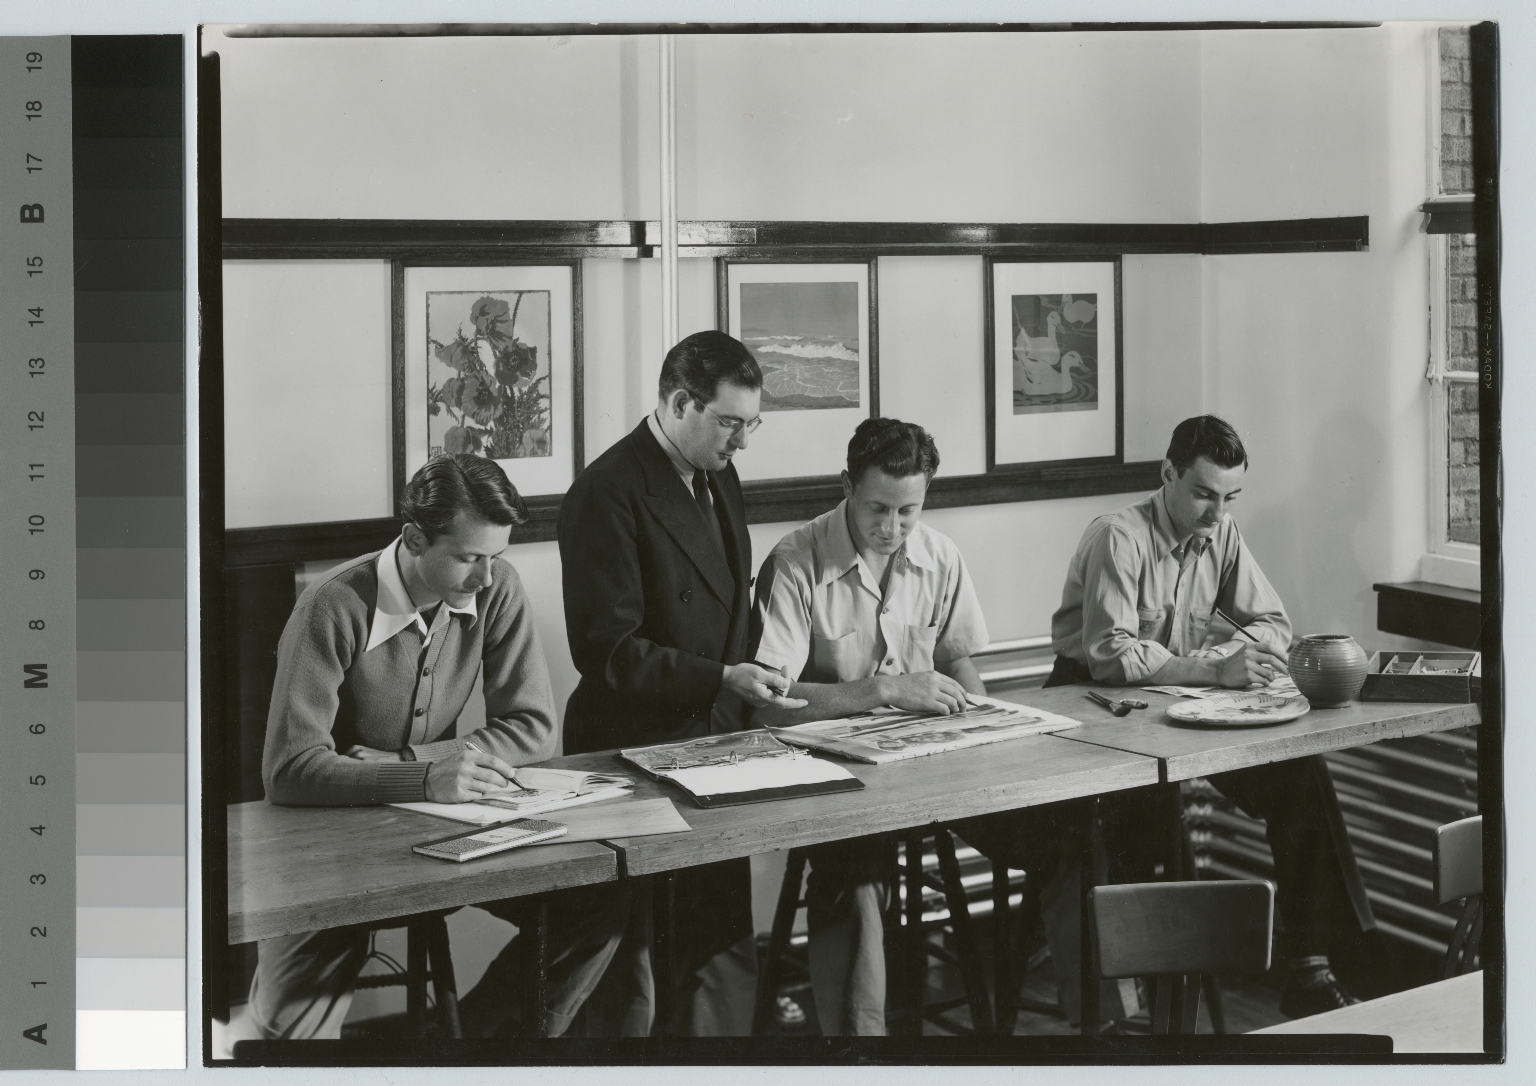 Academics, art and design, Rochester Institute of Technology Dept. of Applied and Fine Arts, students working with an instructor, 1950